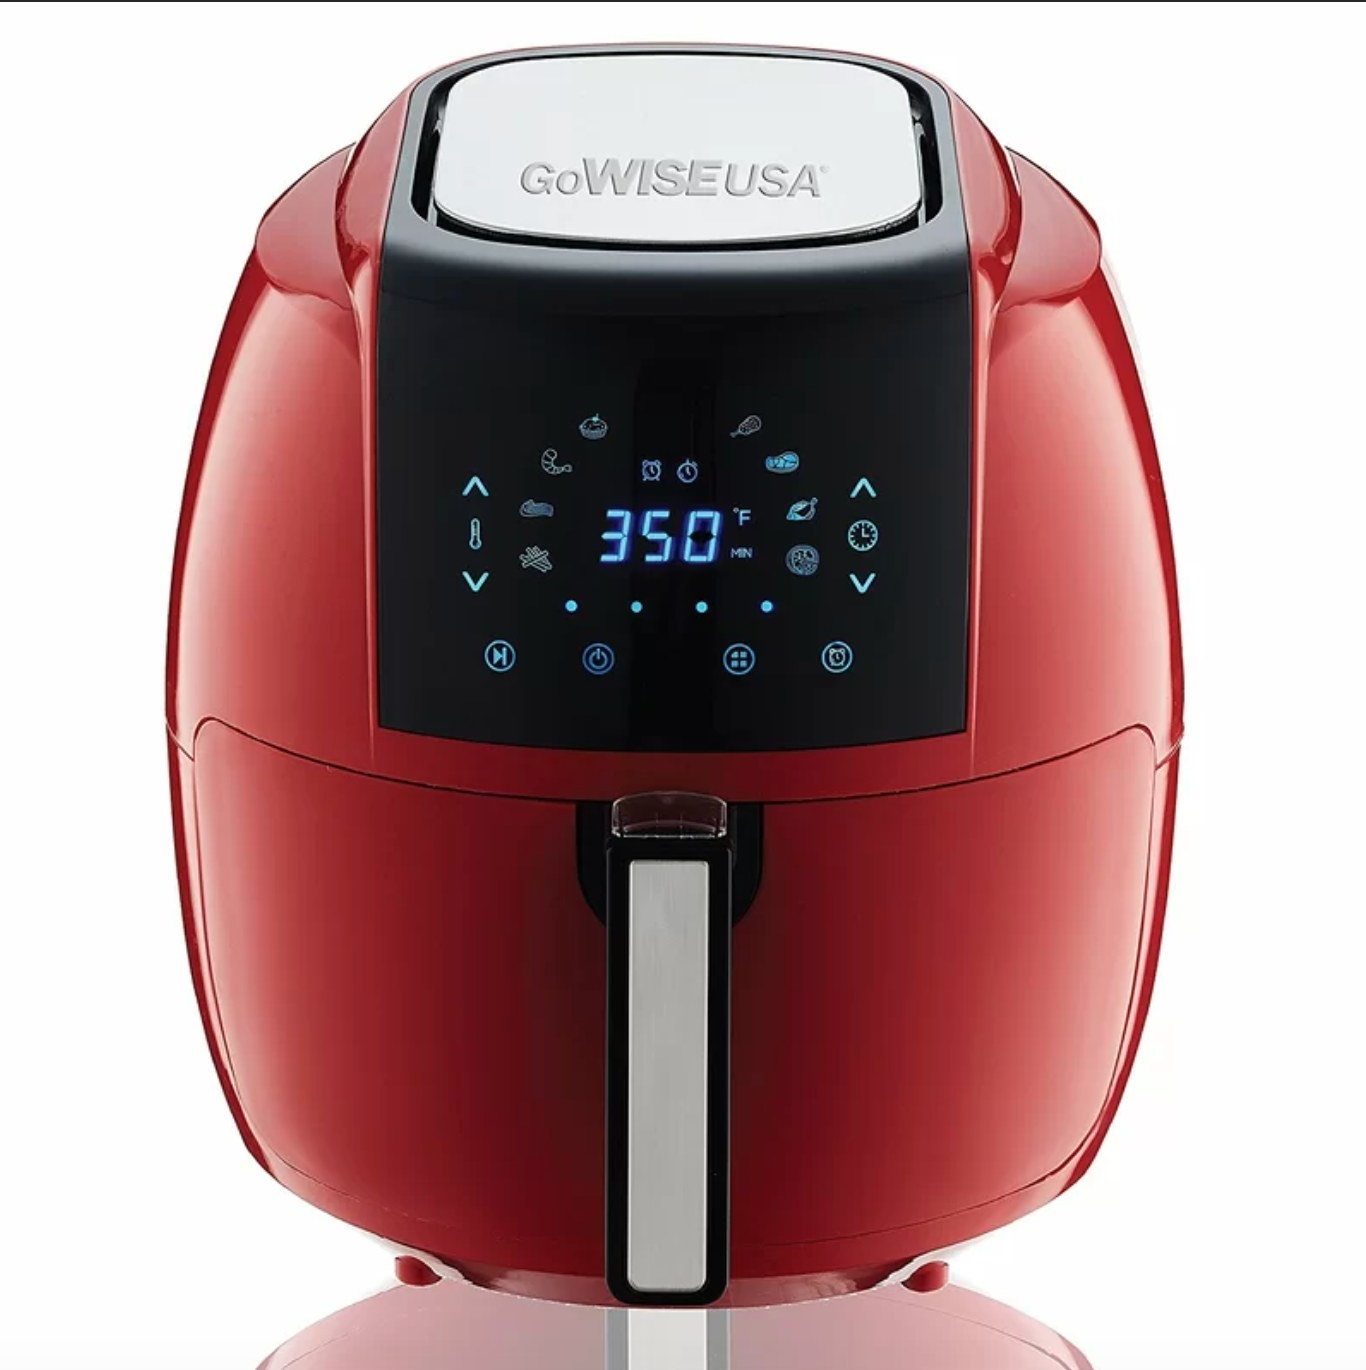 The air-fryer in red